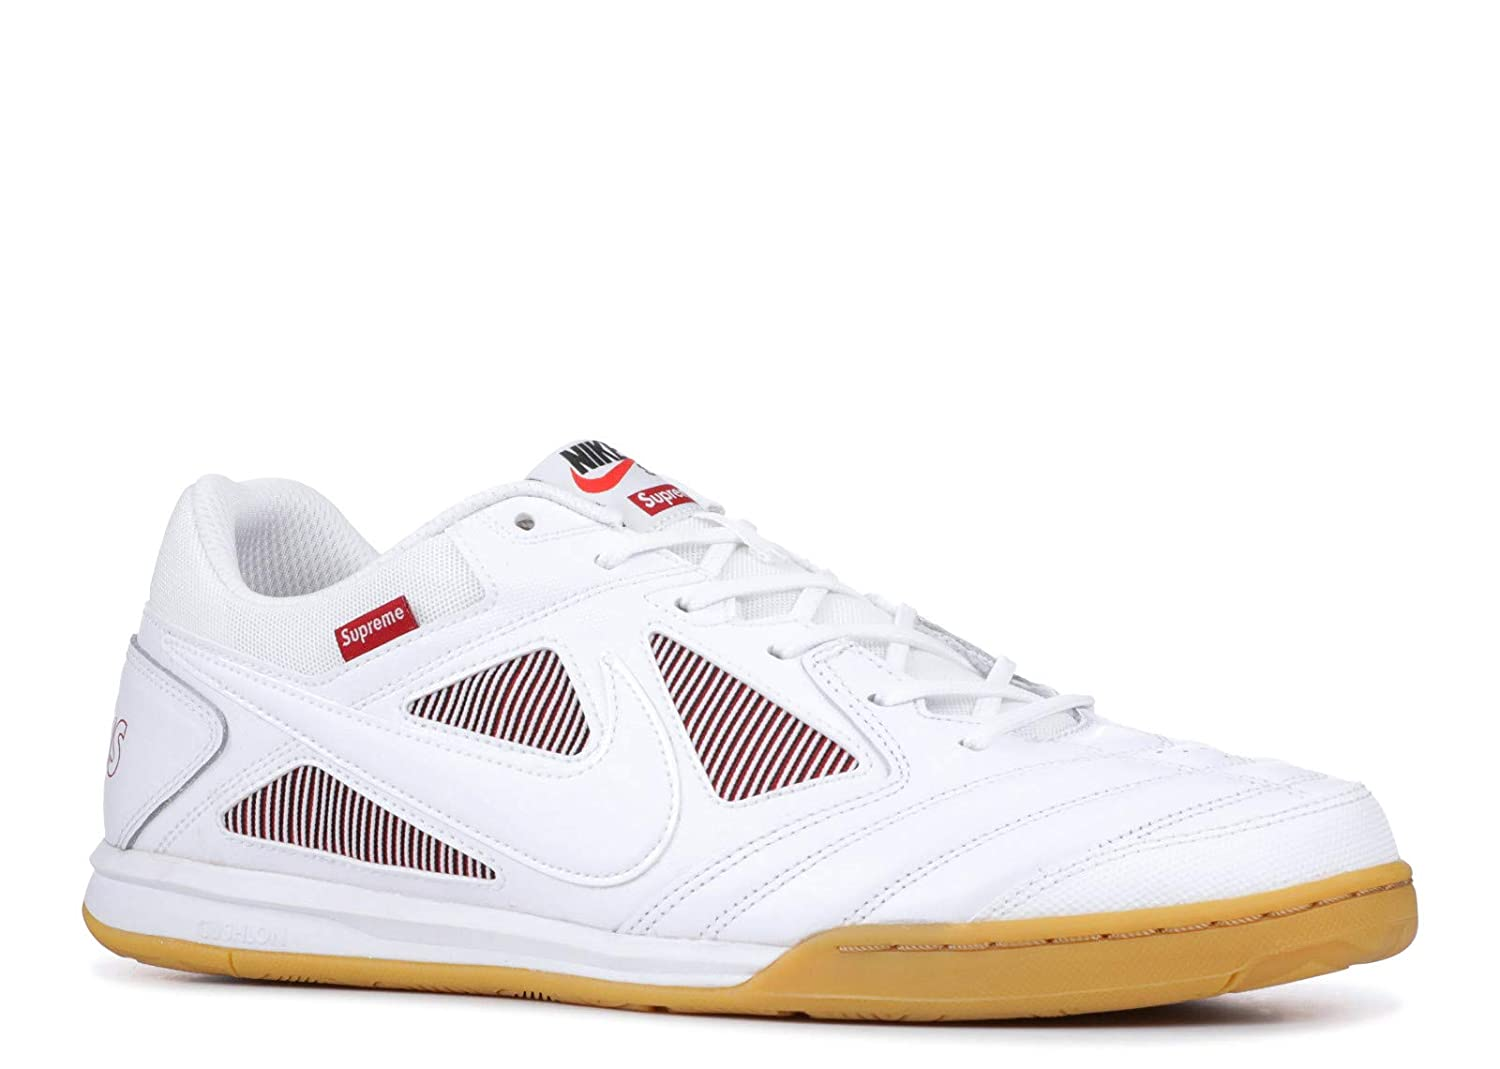 cheapest price huge inventory special section Amazon.com | NIKE Sb Gato Qs 'Supreme' - Ar9821-116 - Size ...